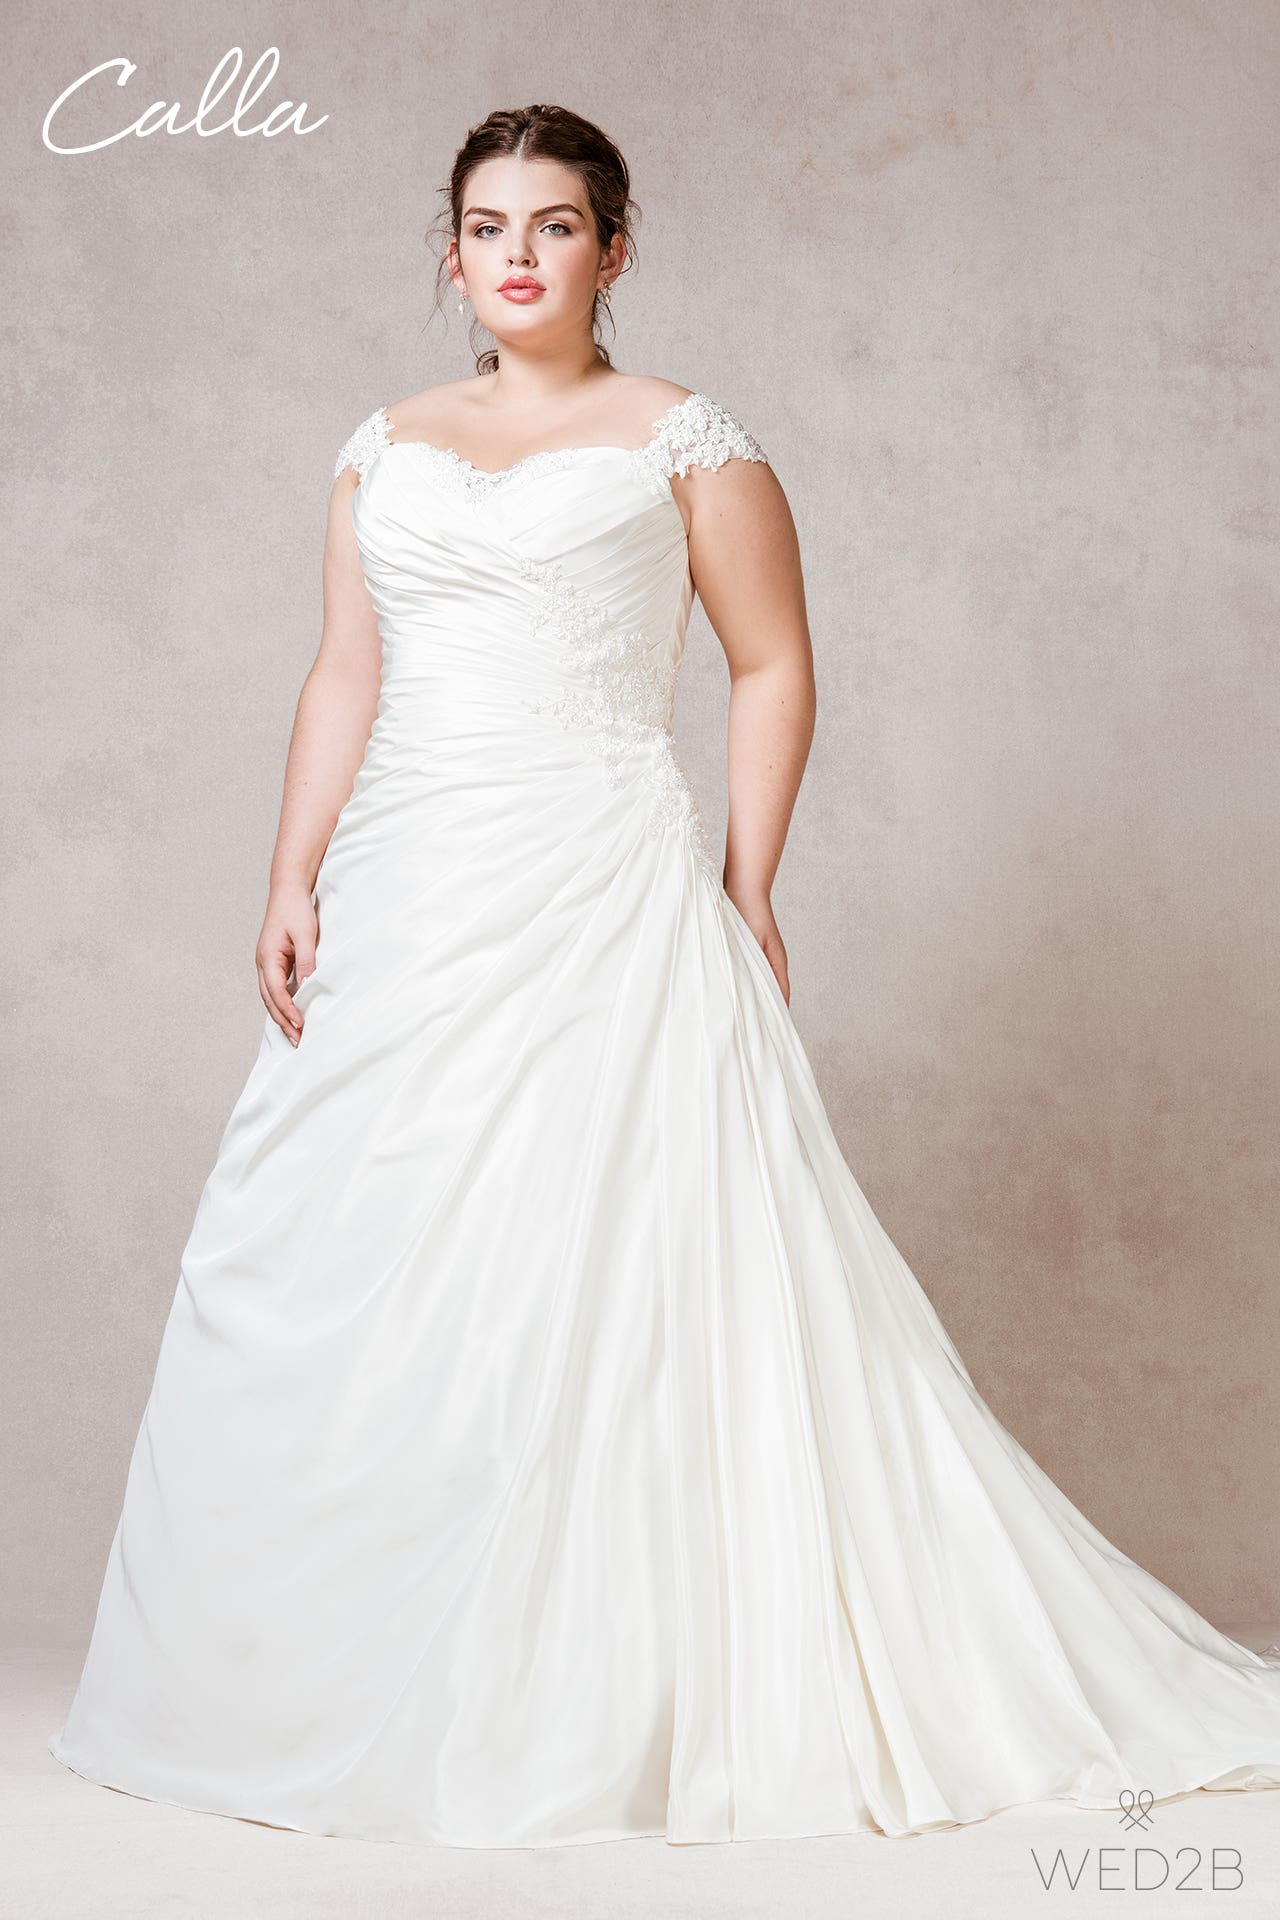 Calla plus size wedding dress